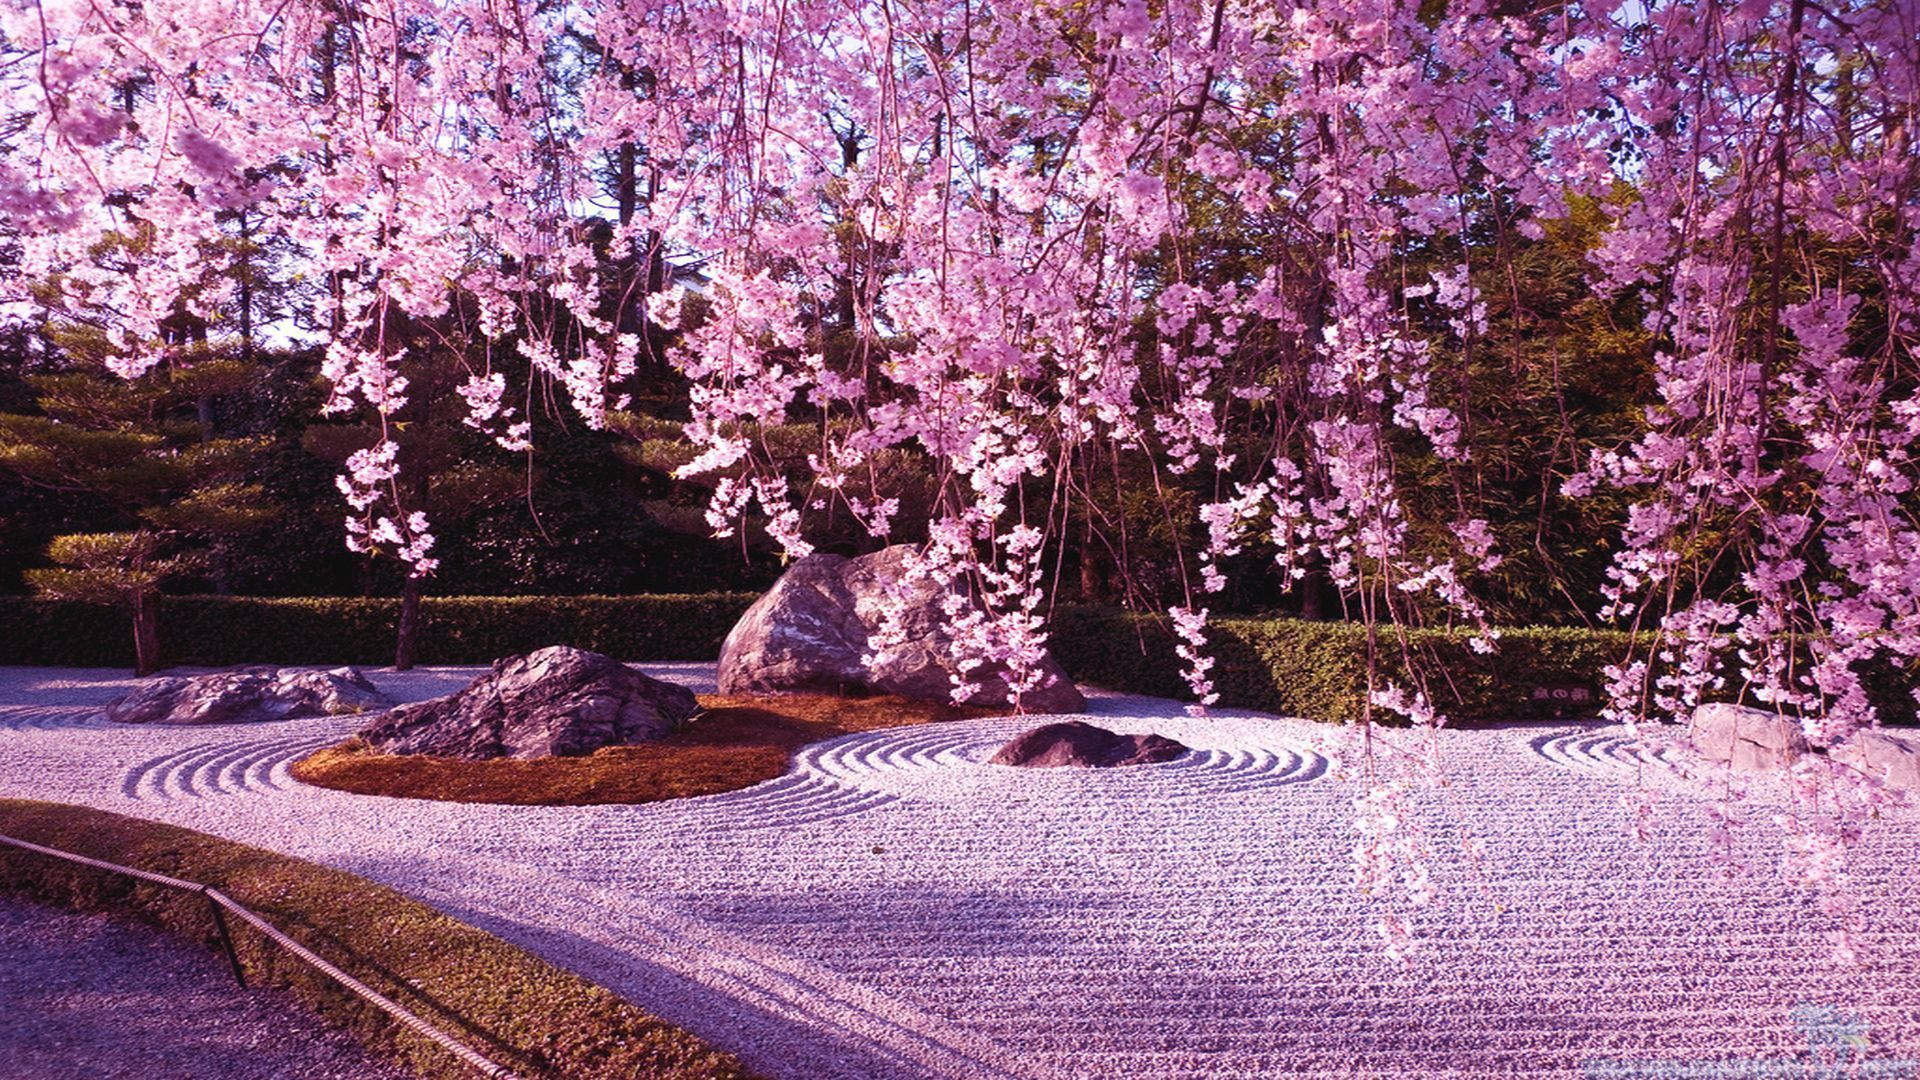 Ps4 4k Anime Cherry Blossom Wallpapers - Wallpaper Cave